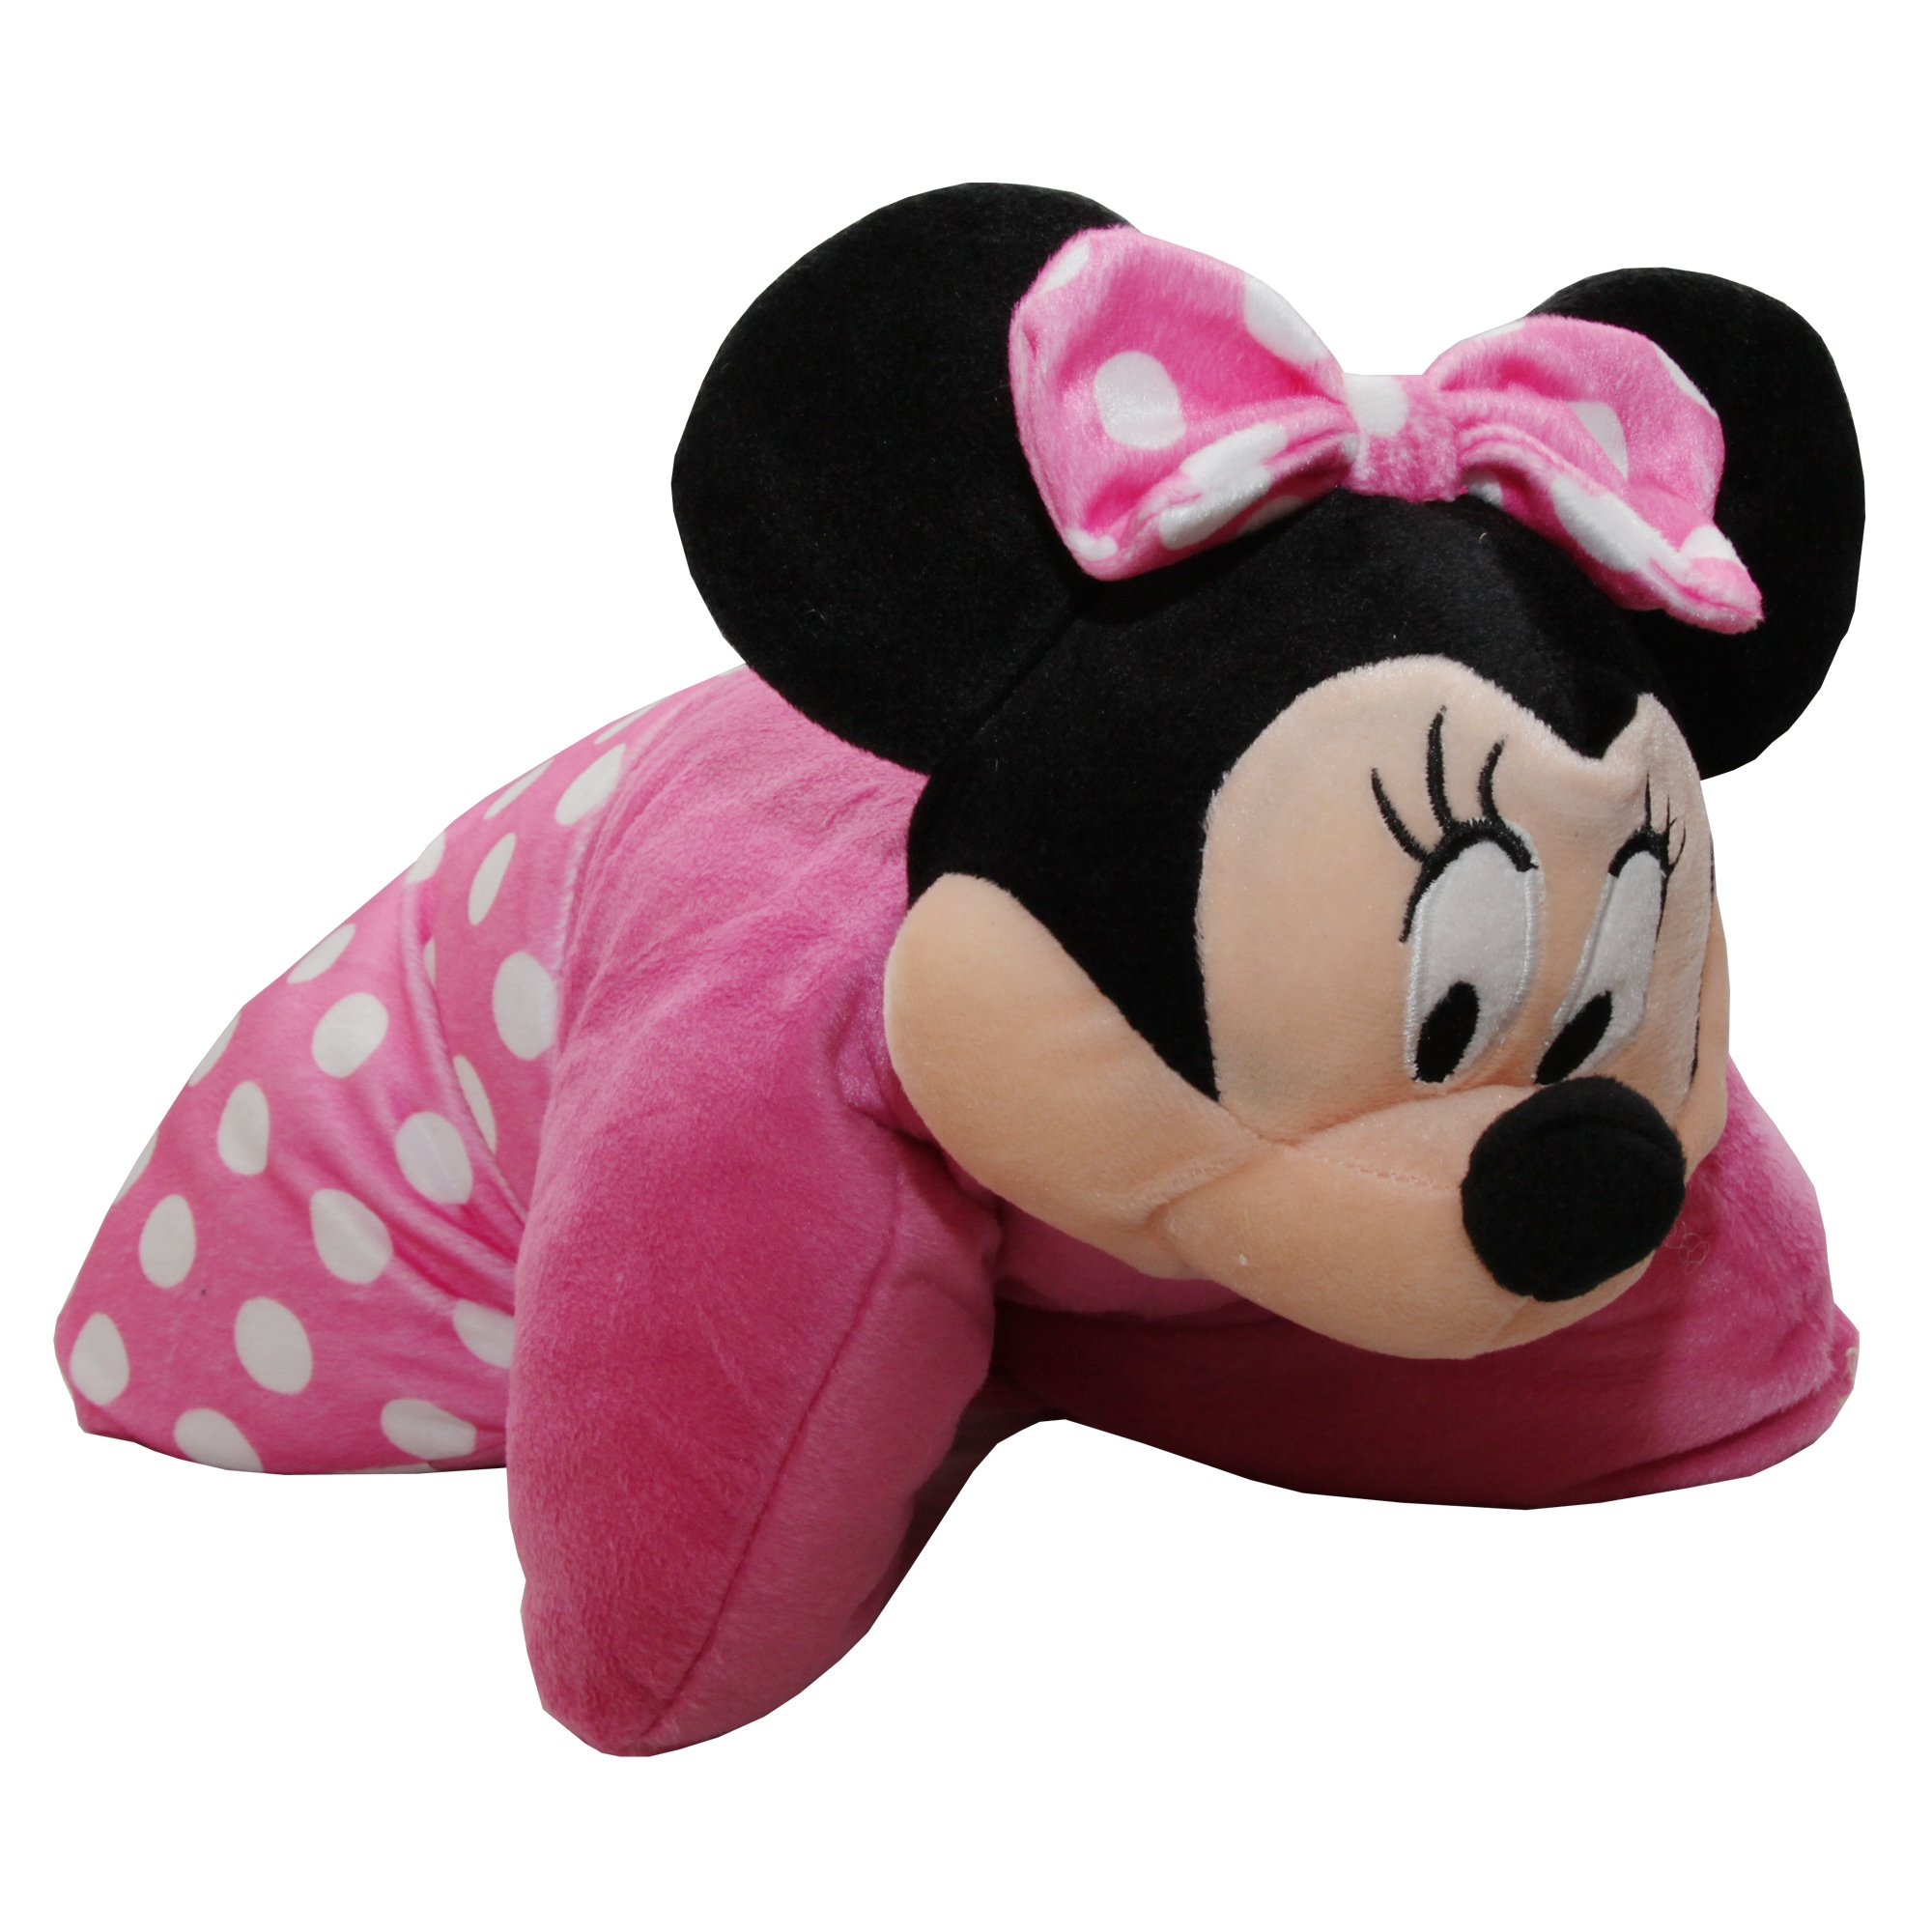 Disney Childrens Minnie Mouse 3D Pillow With Face (15in x 15in) (Pink)